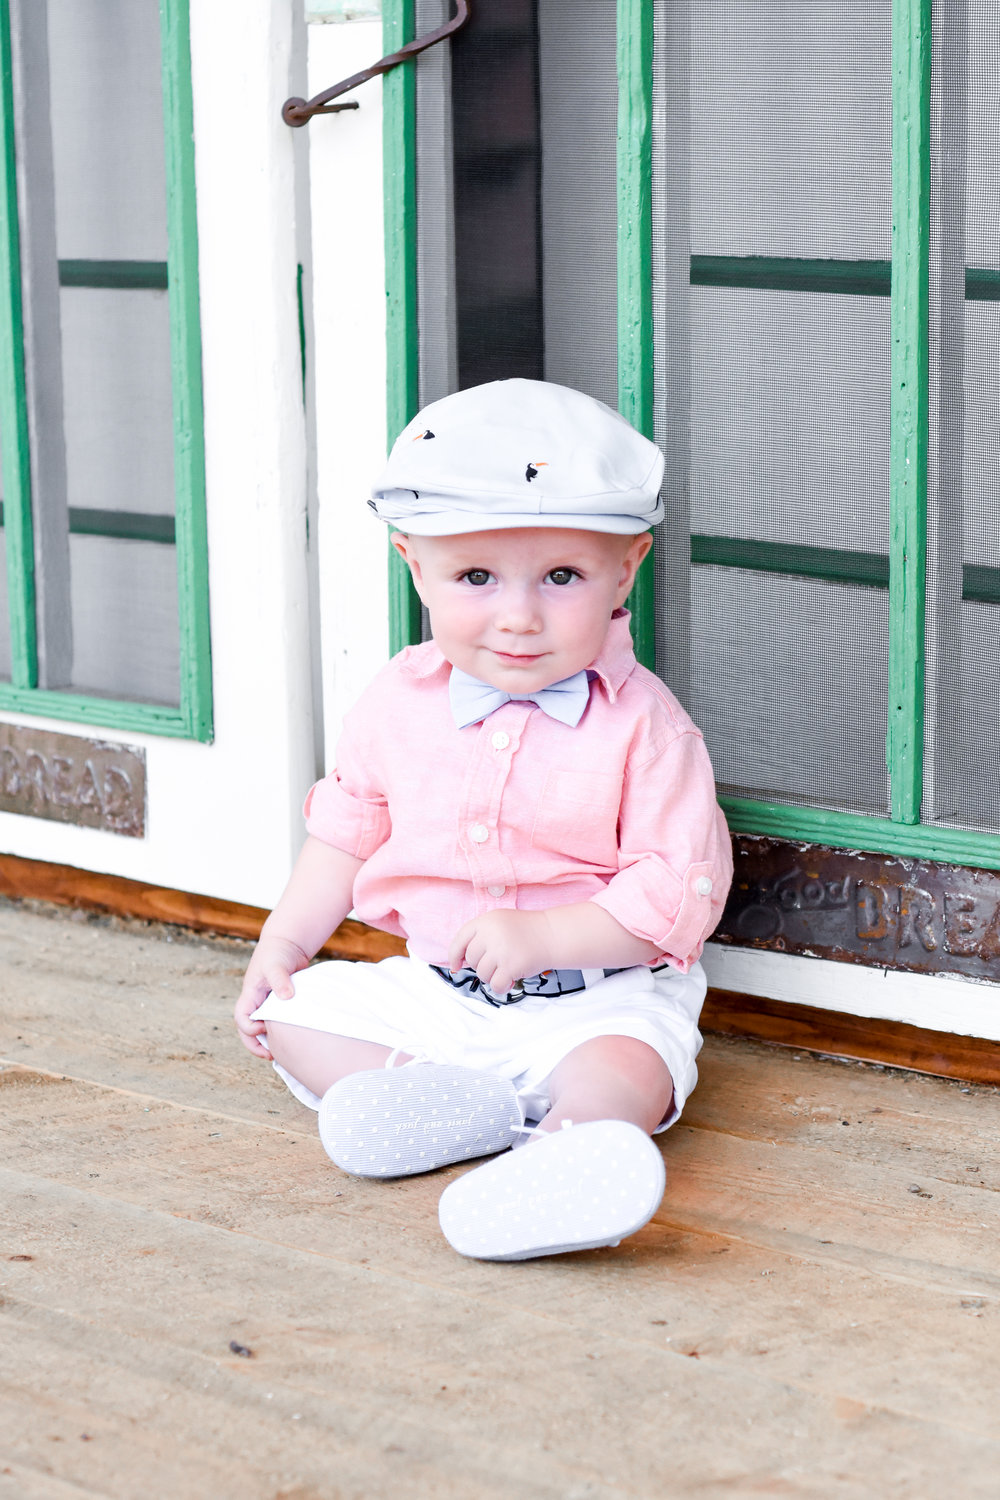 6 tips to create a dapper look for your son with Janie and Jack